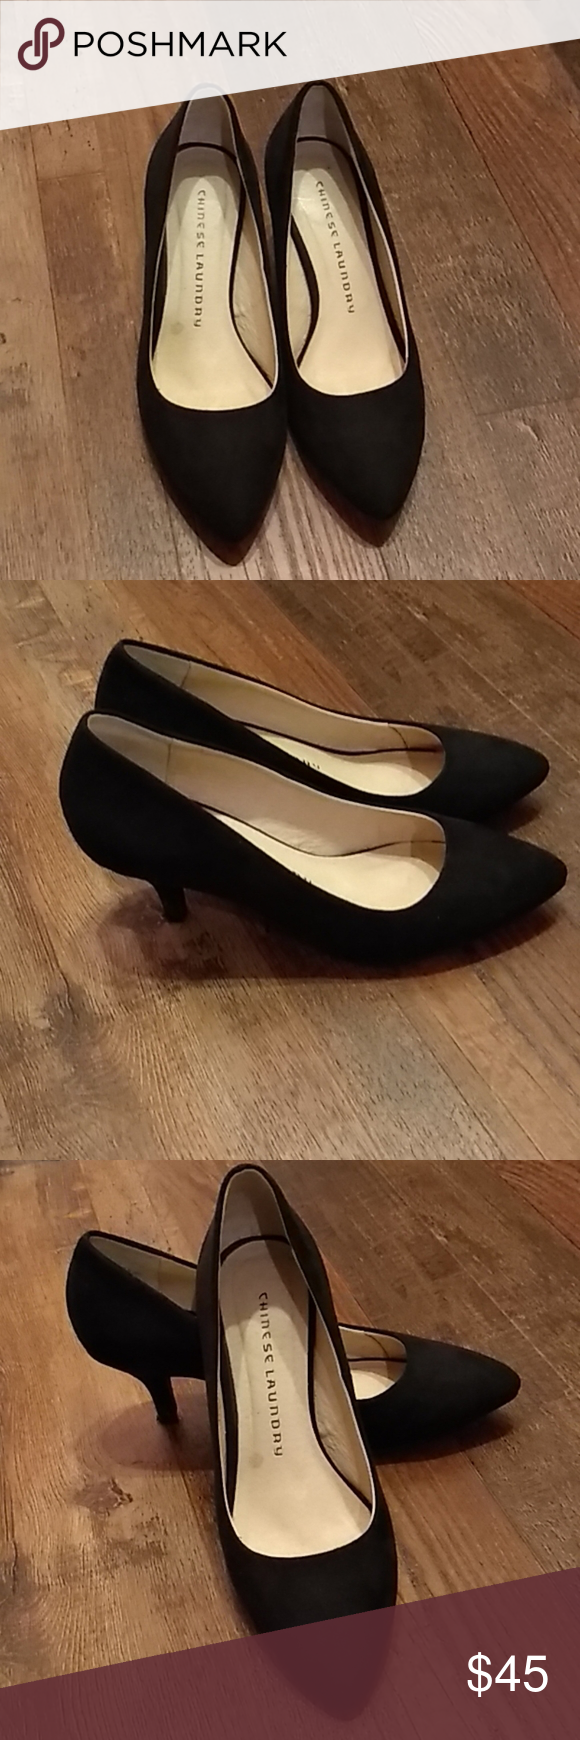 Chinese Laundry Heels Ladies Size 6 Chinese Laundry Black Low